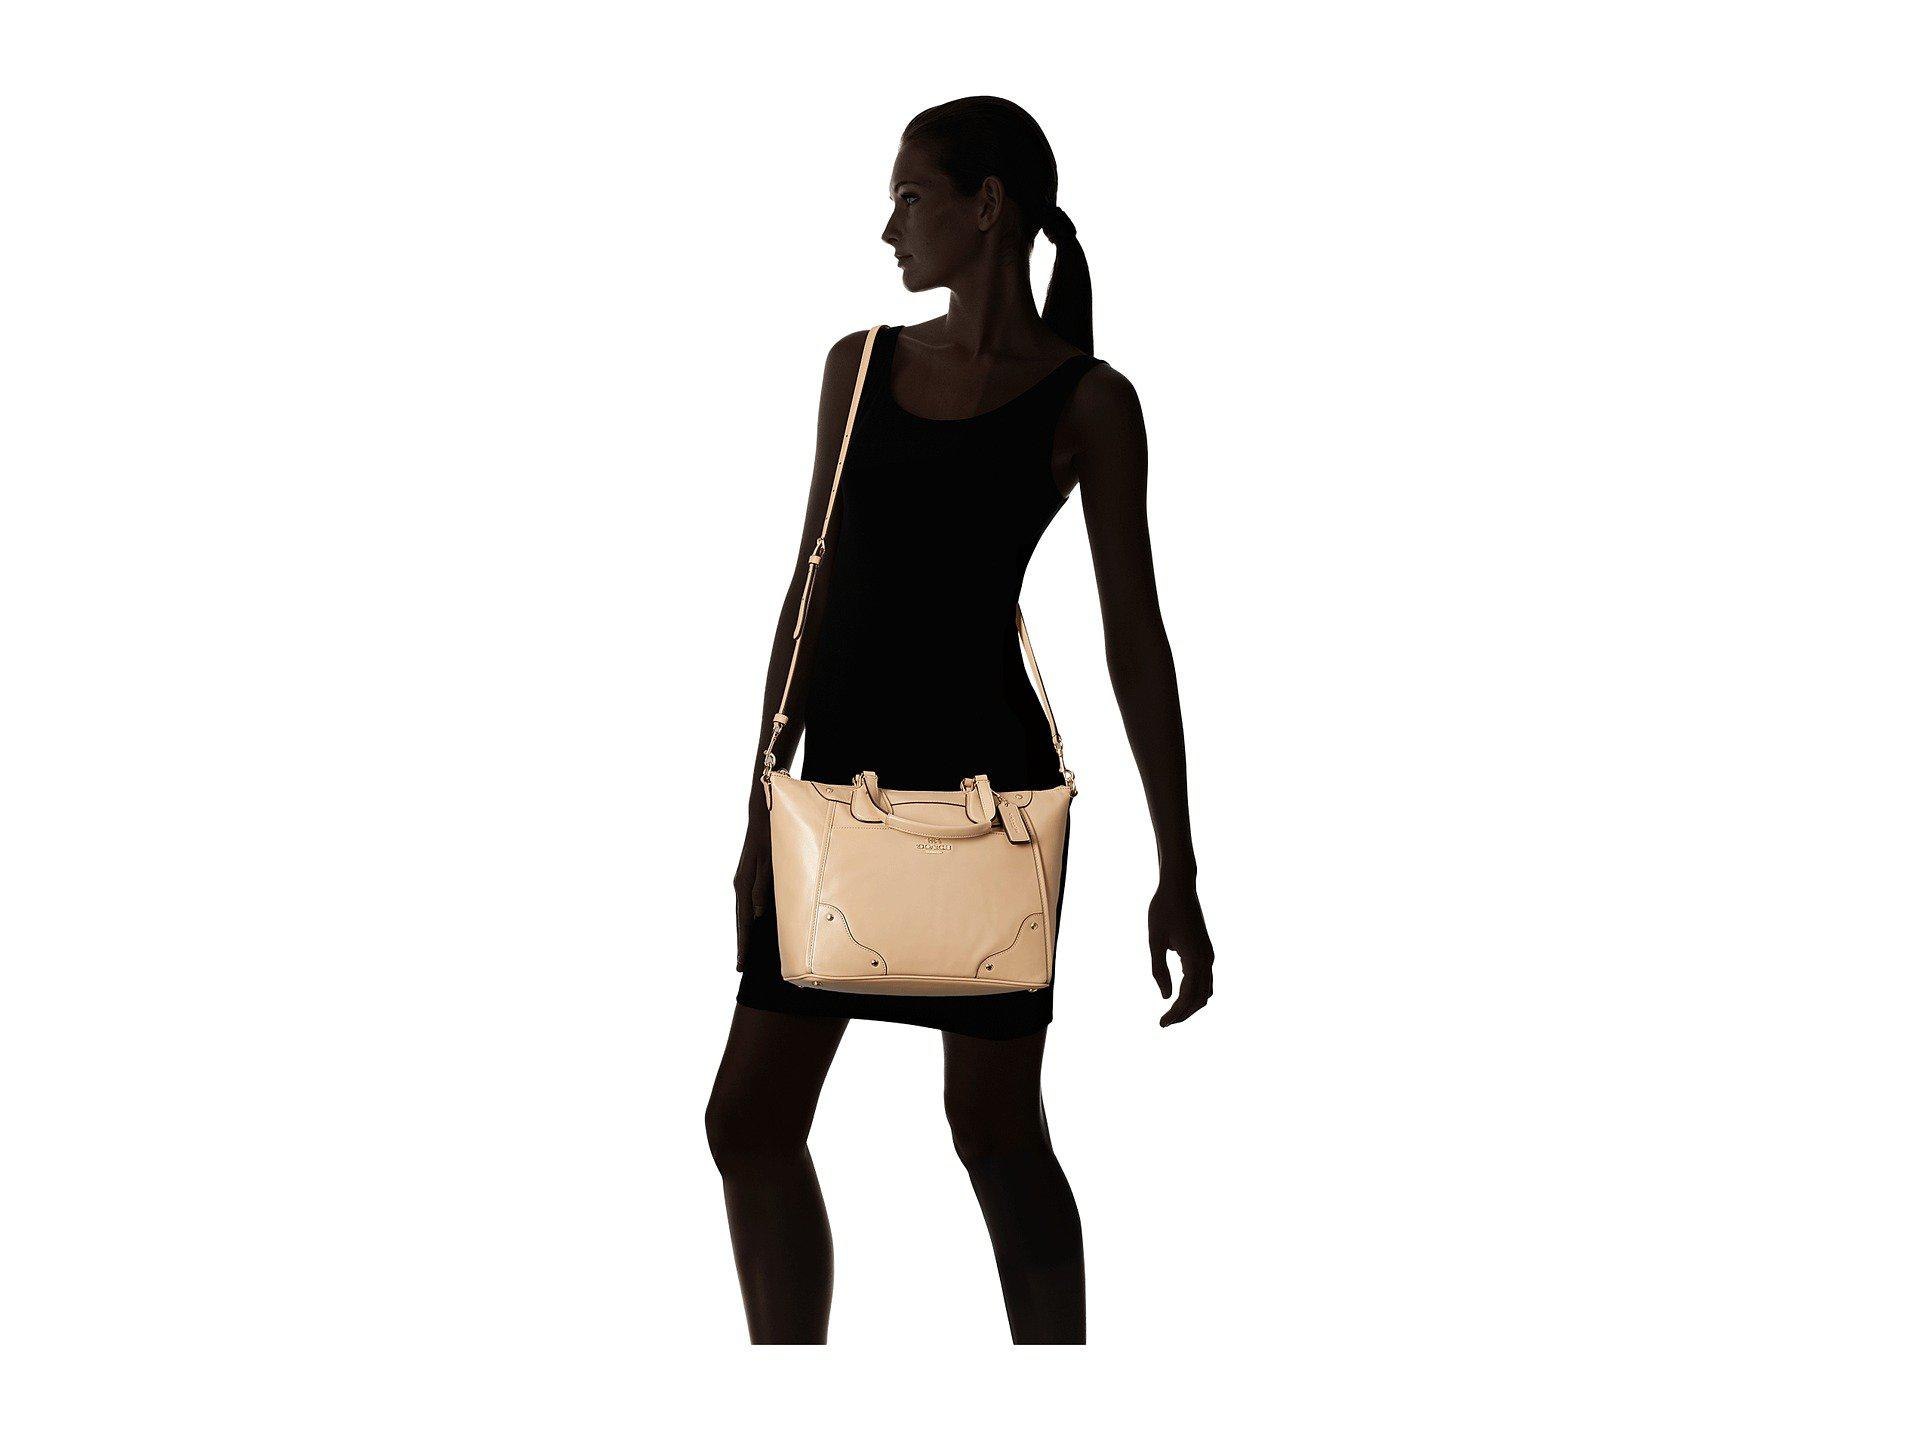 bd01d63e3 COACH Grain Leather Mickie Satchel in Natural - Lyst